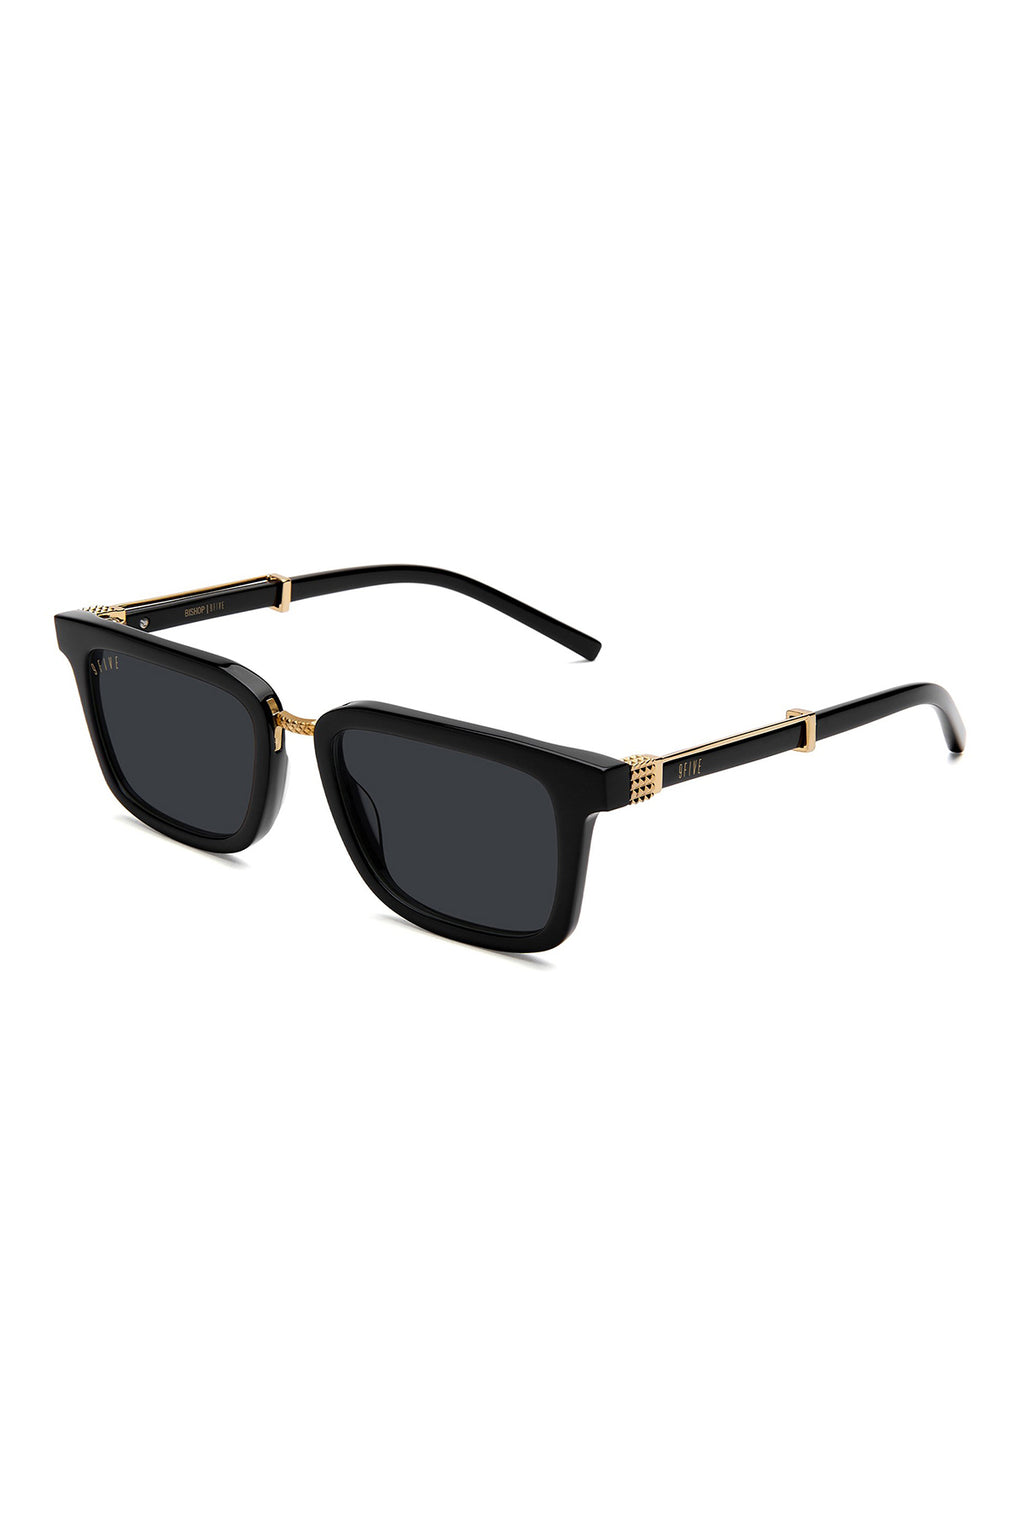 9Five Sunglasses - Bishop Black Gold Angle